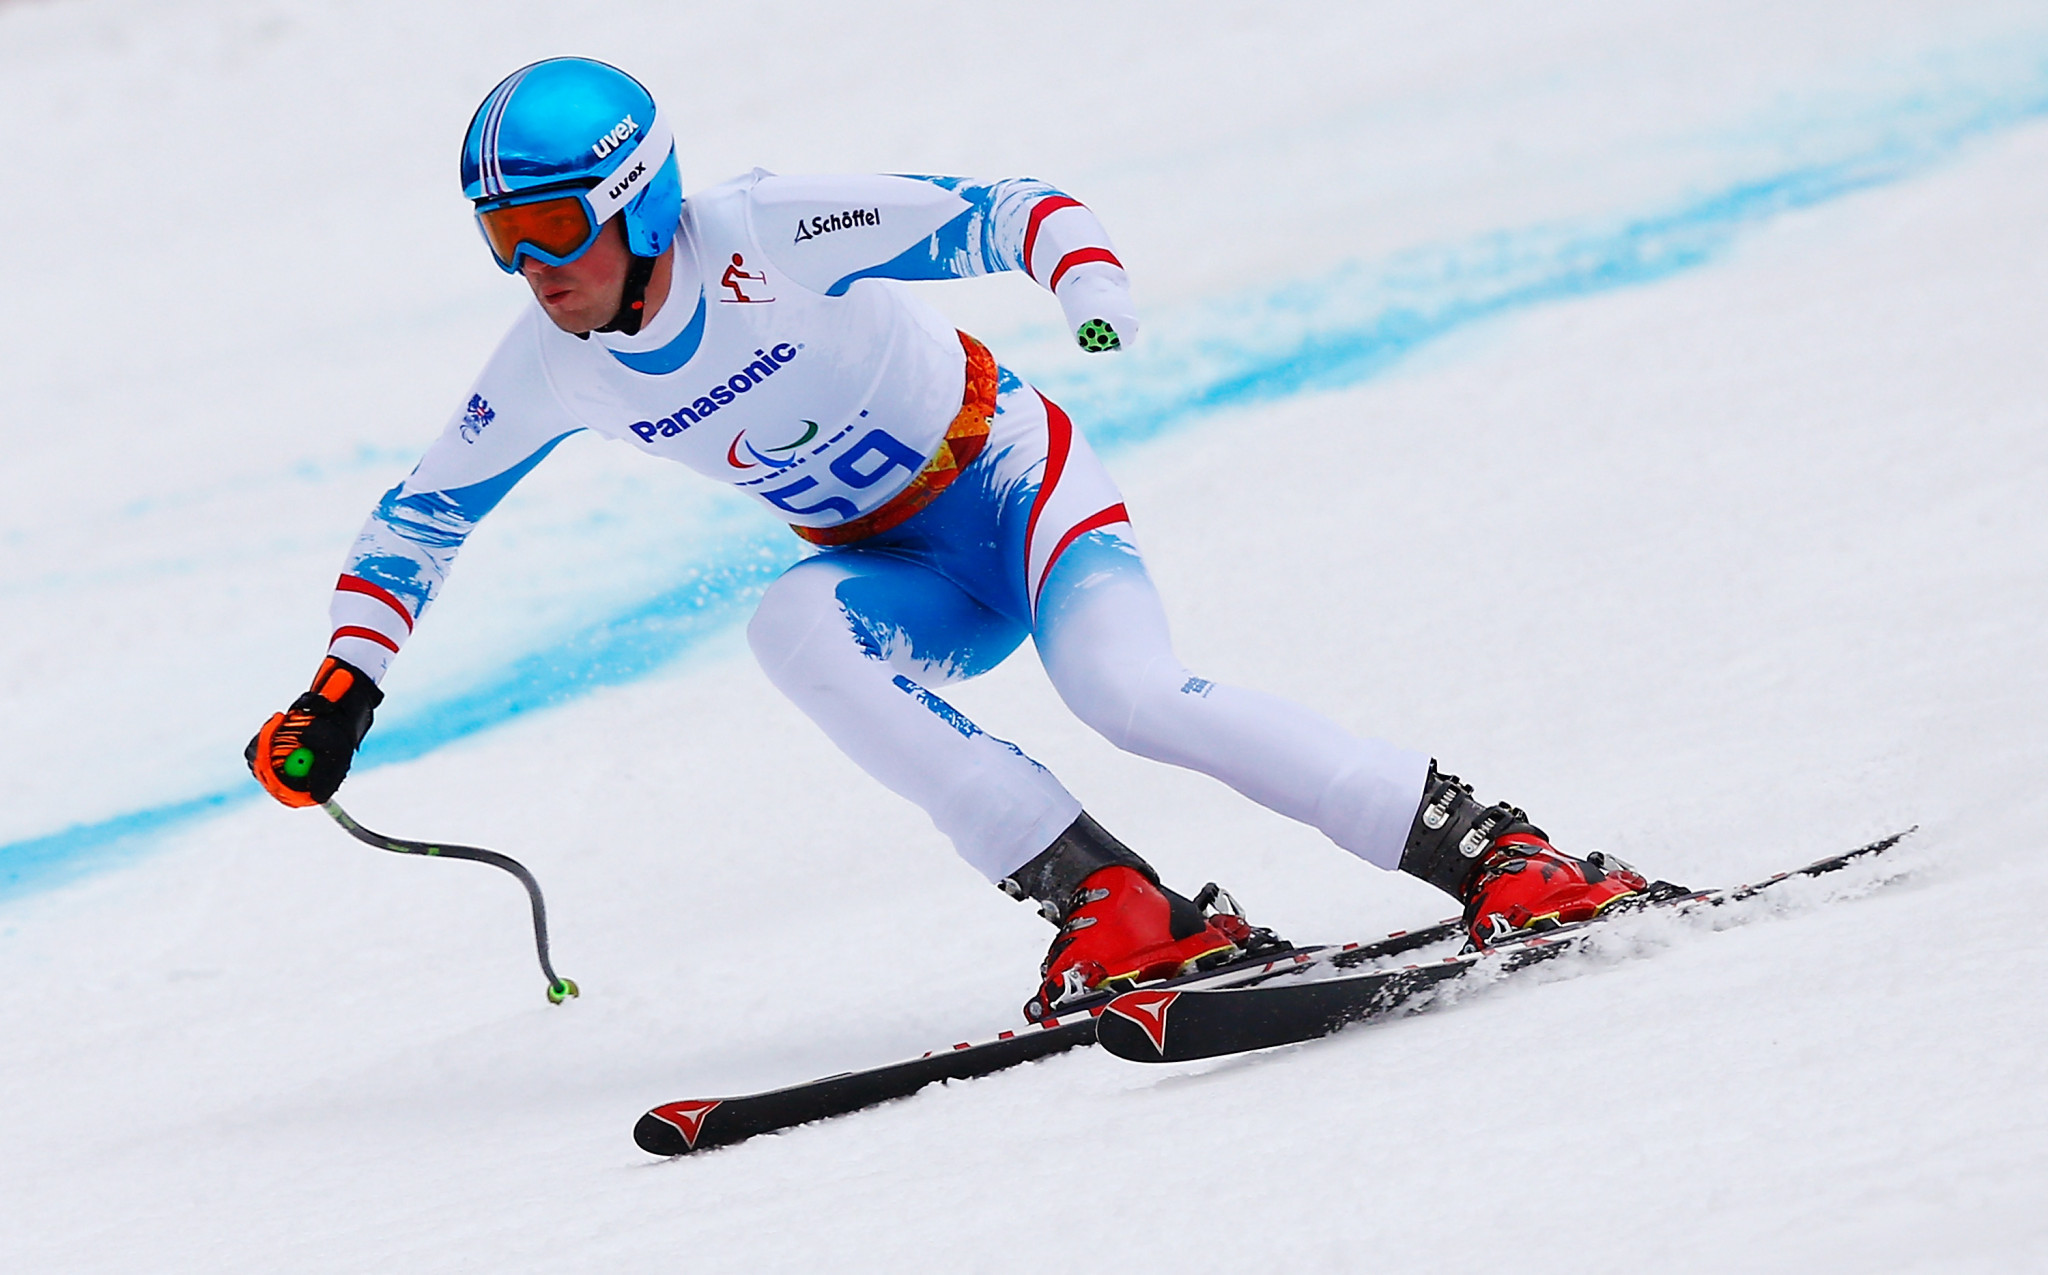 Wuerz and Loesch gain slalom wins at World Para Alpine Skiing World Cup in Zagreb